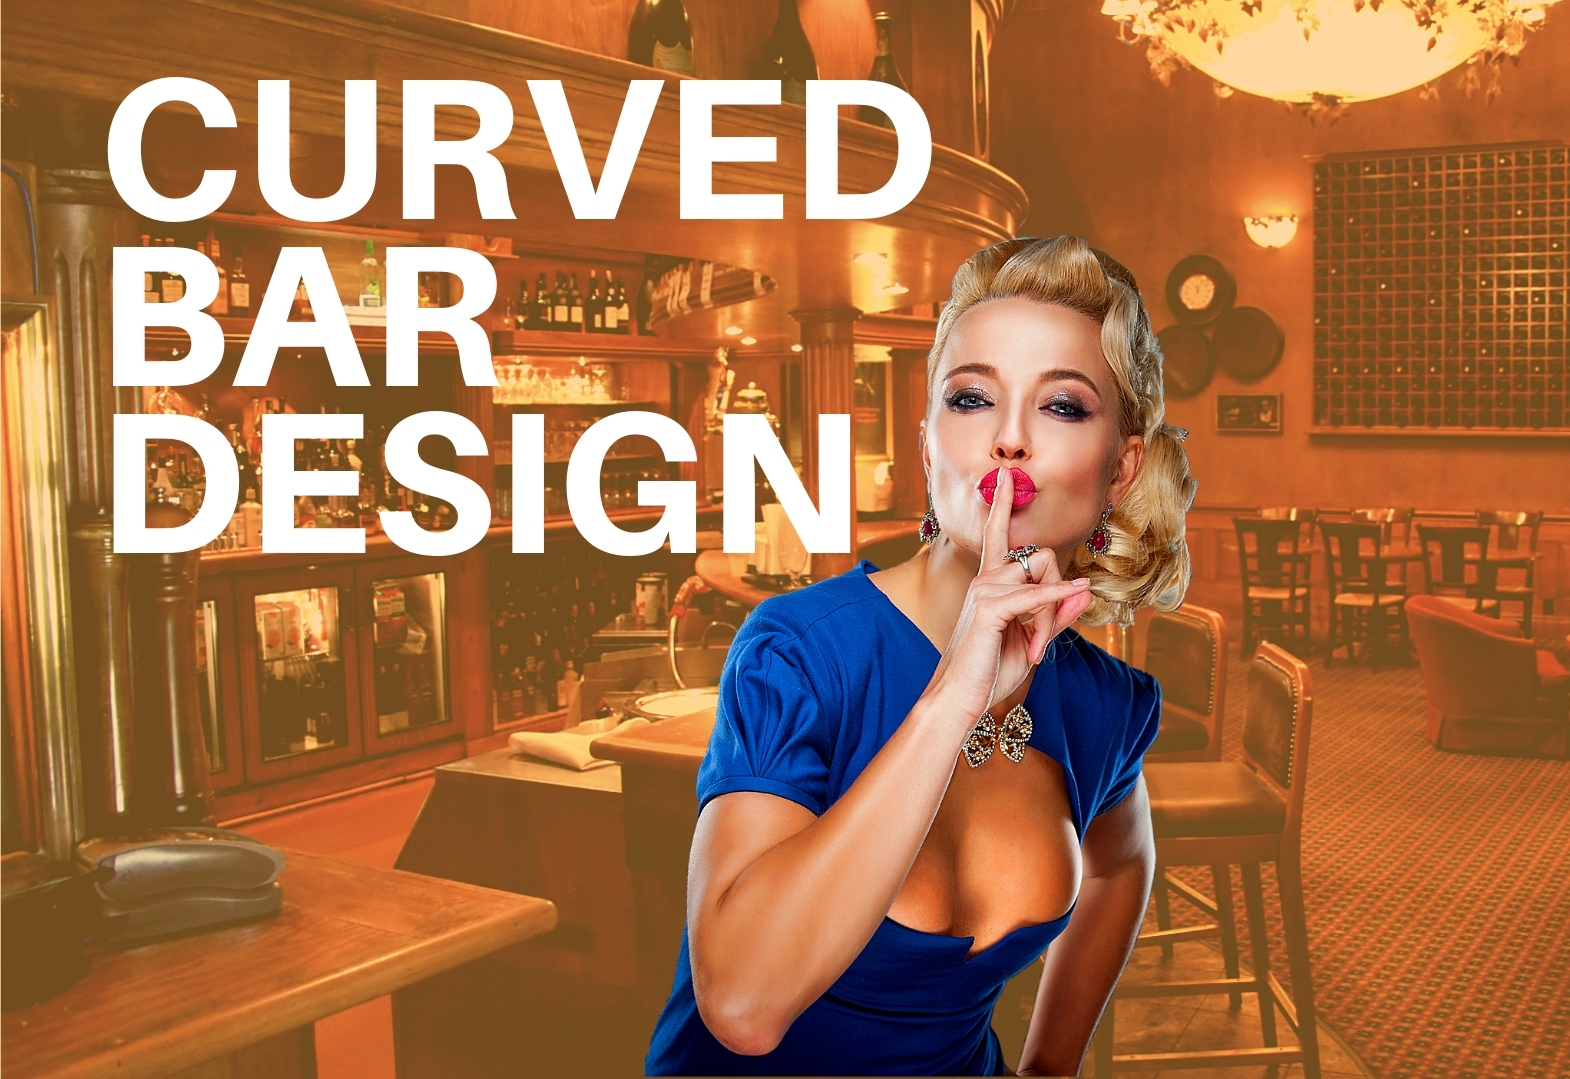 CURVED-BAR-DESIGN-WITH-GORGEOUS-CHICK-TN